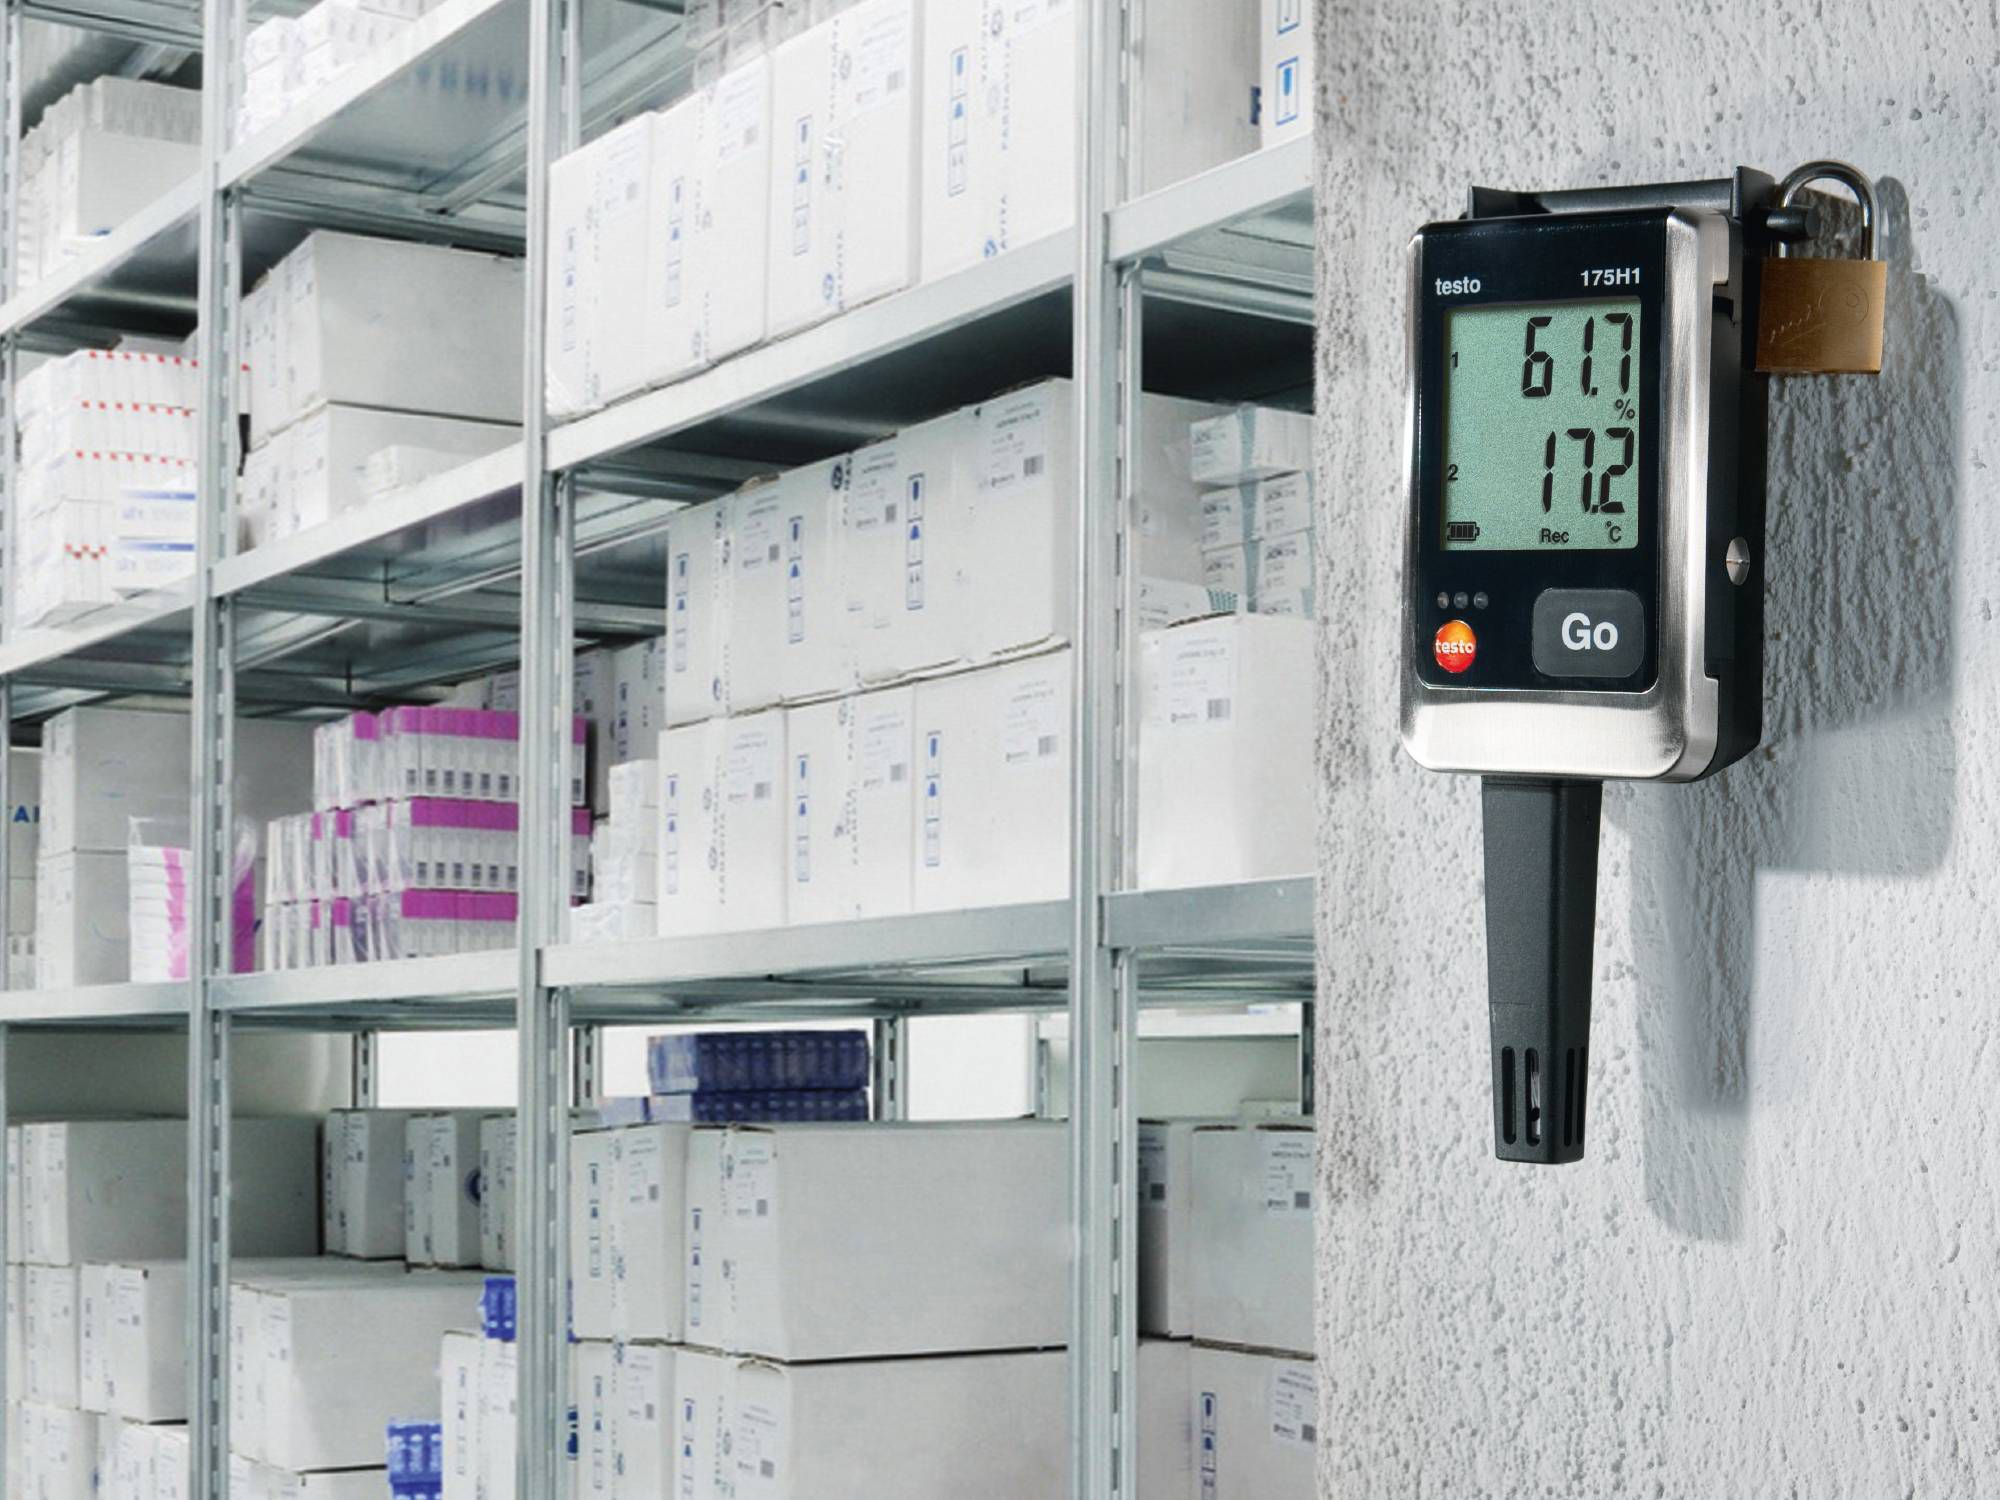 The testo 175 H1 data logger ensures the correct IAQ parameters for storing drugs.